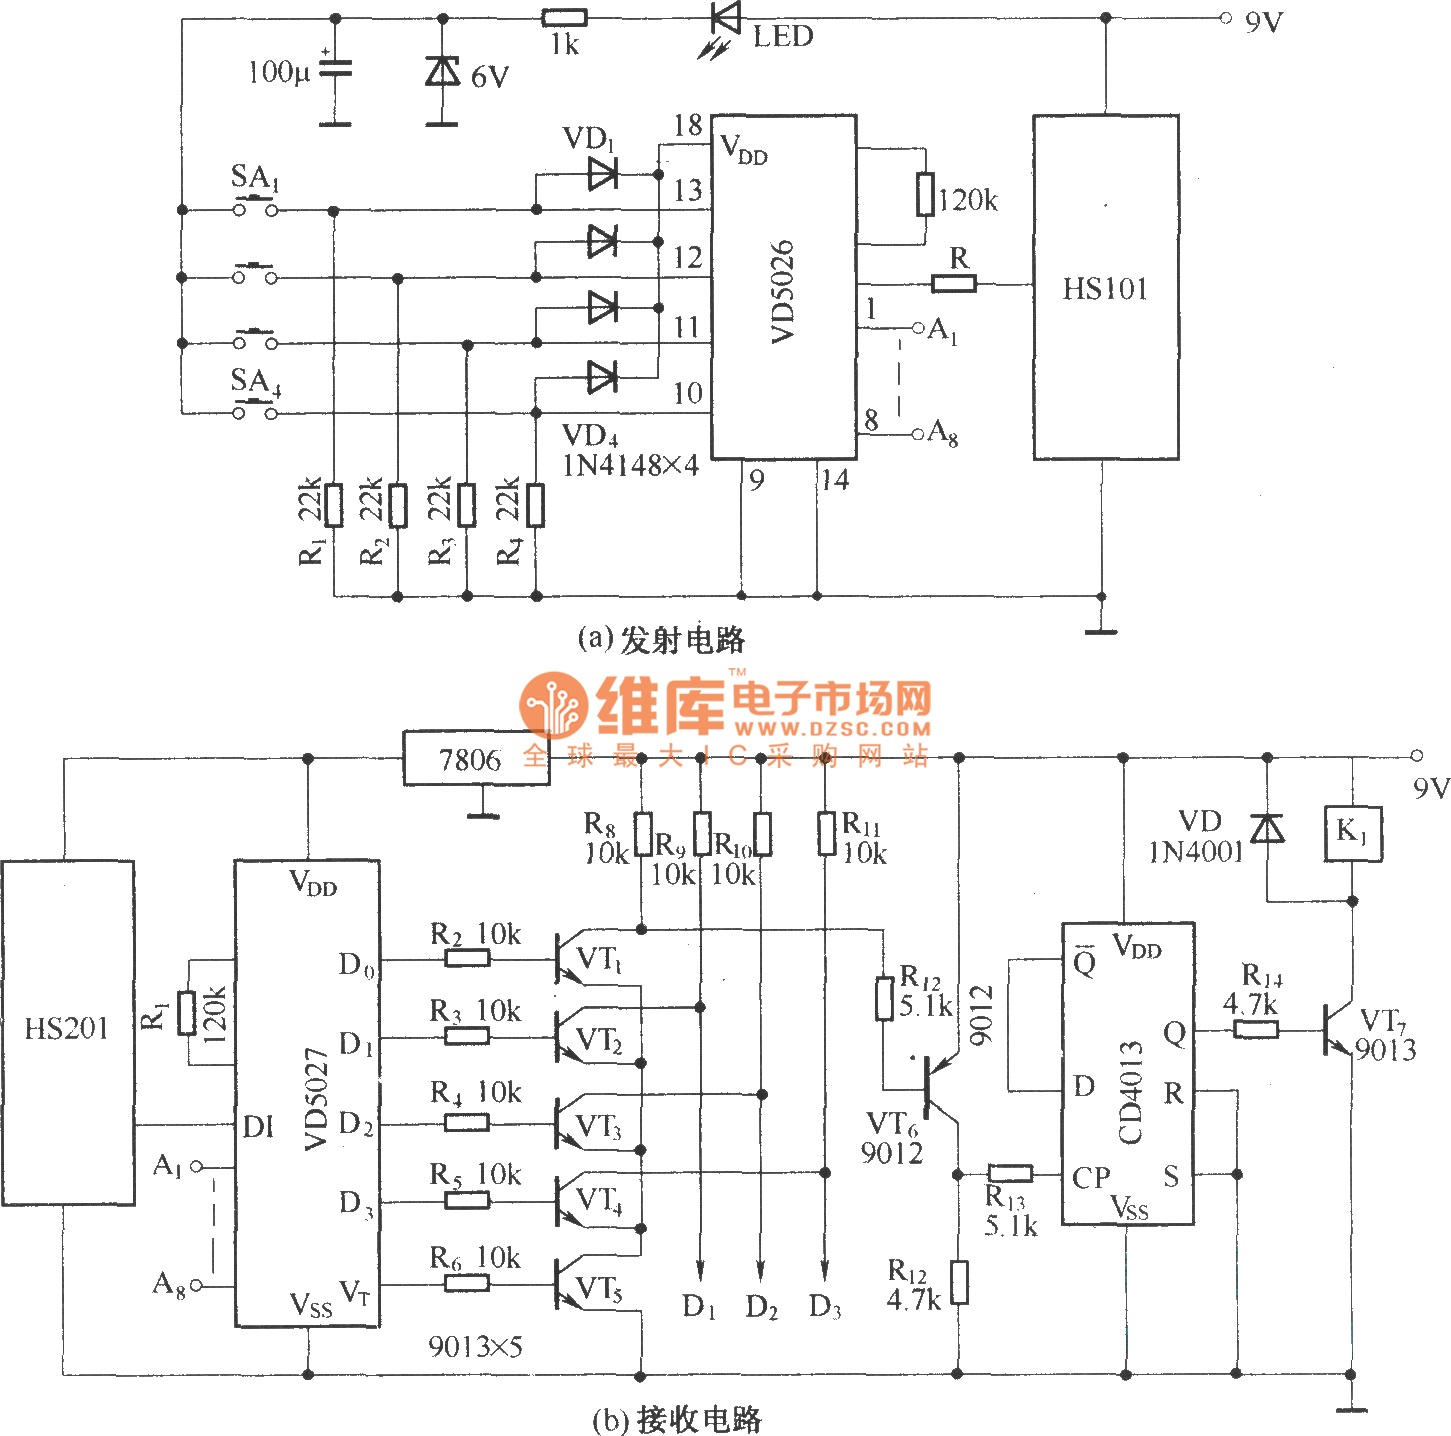 Composed of HS101/HS201 4 channels remote control switch circuit diagram